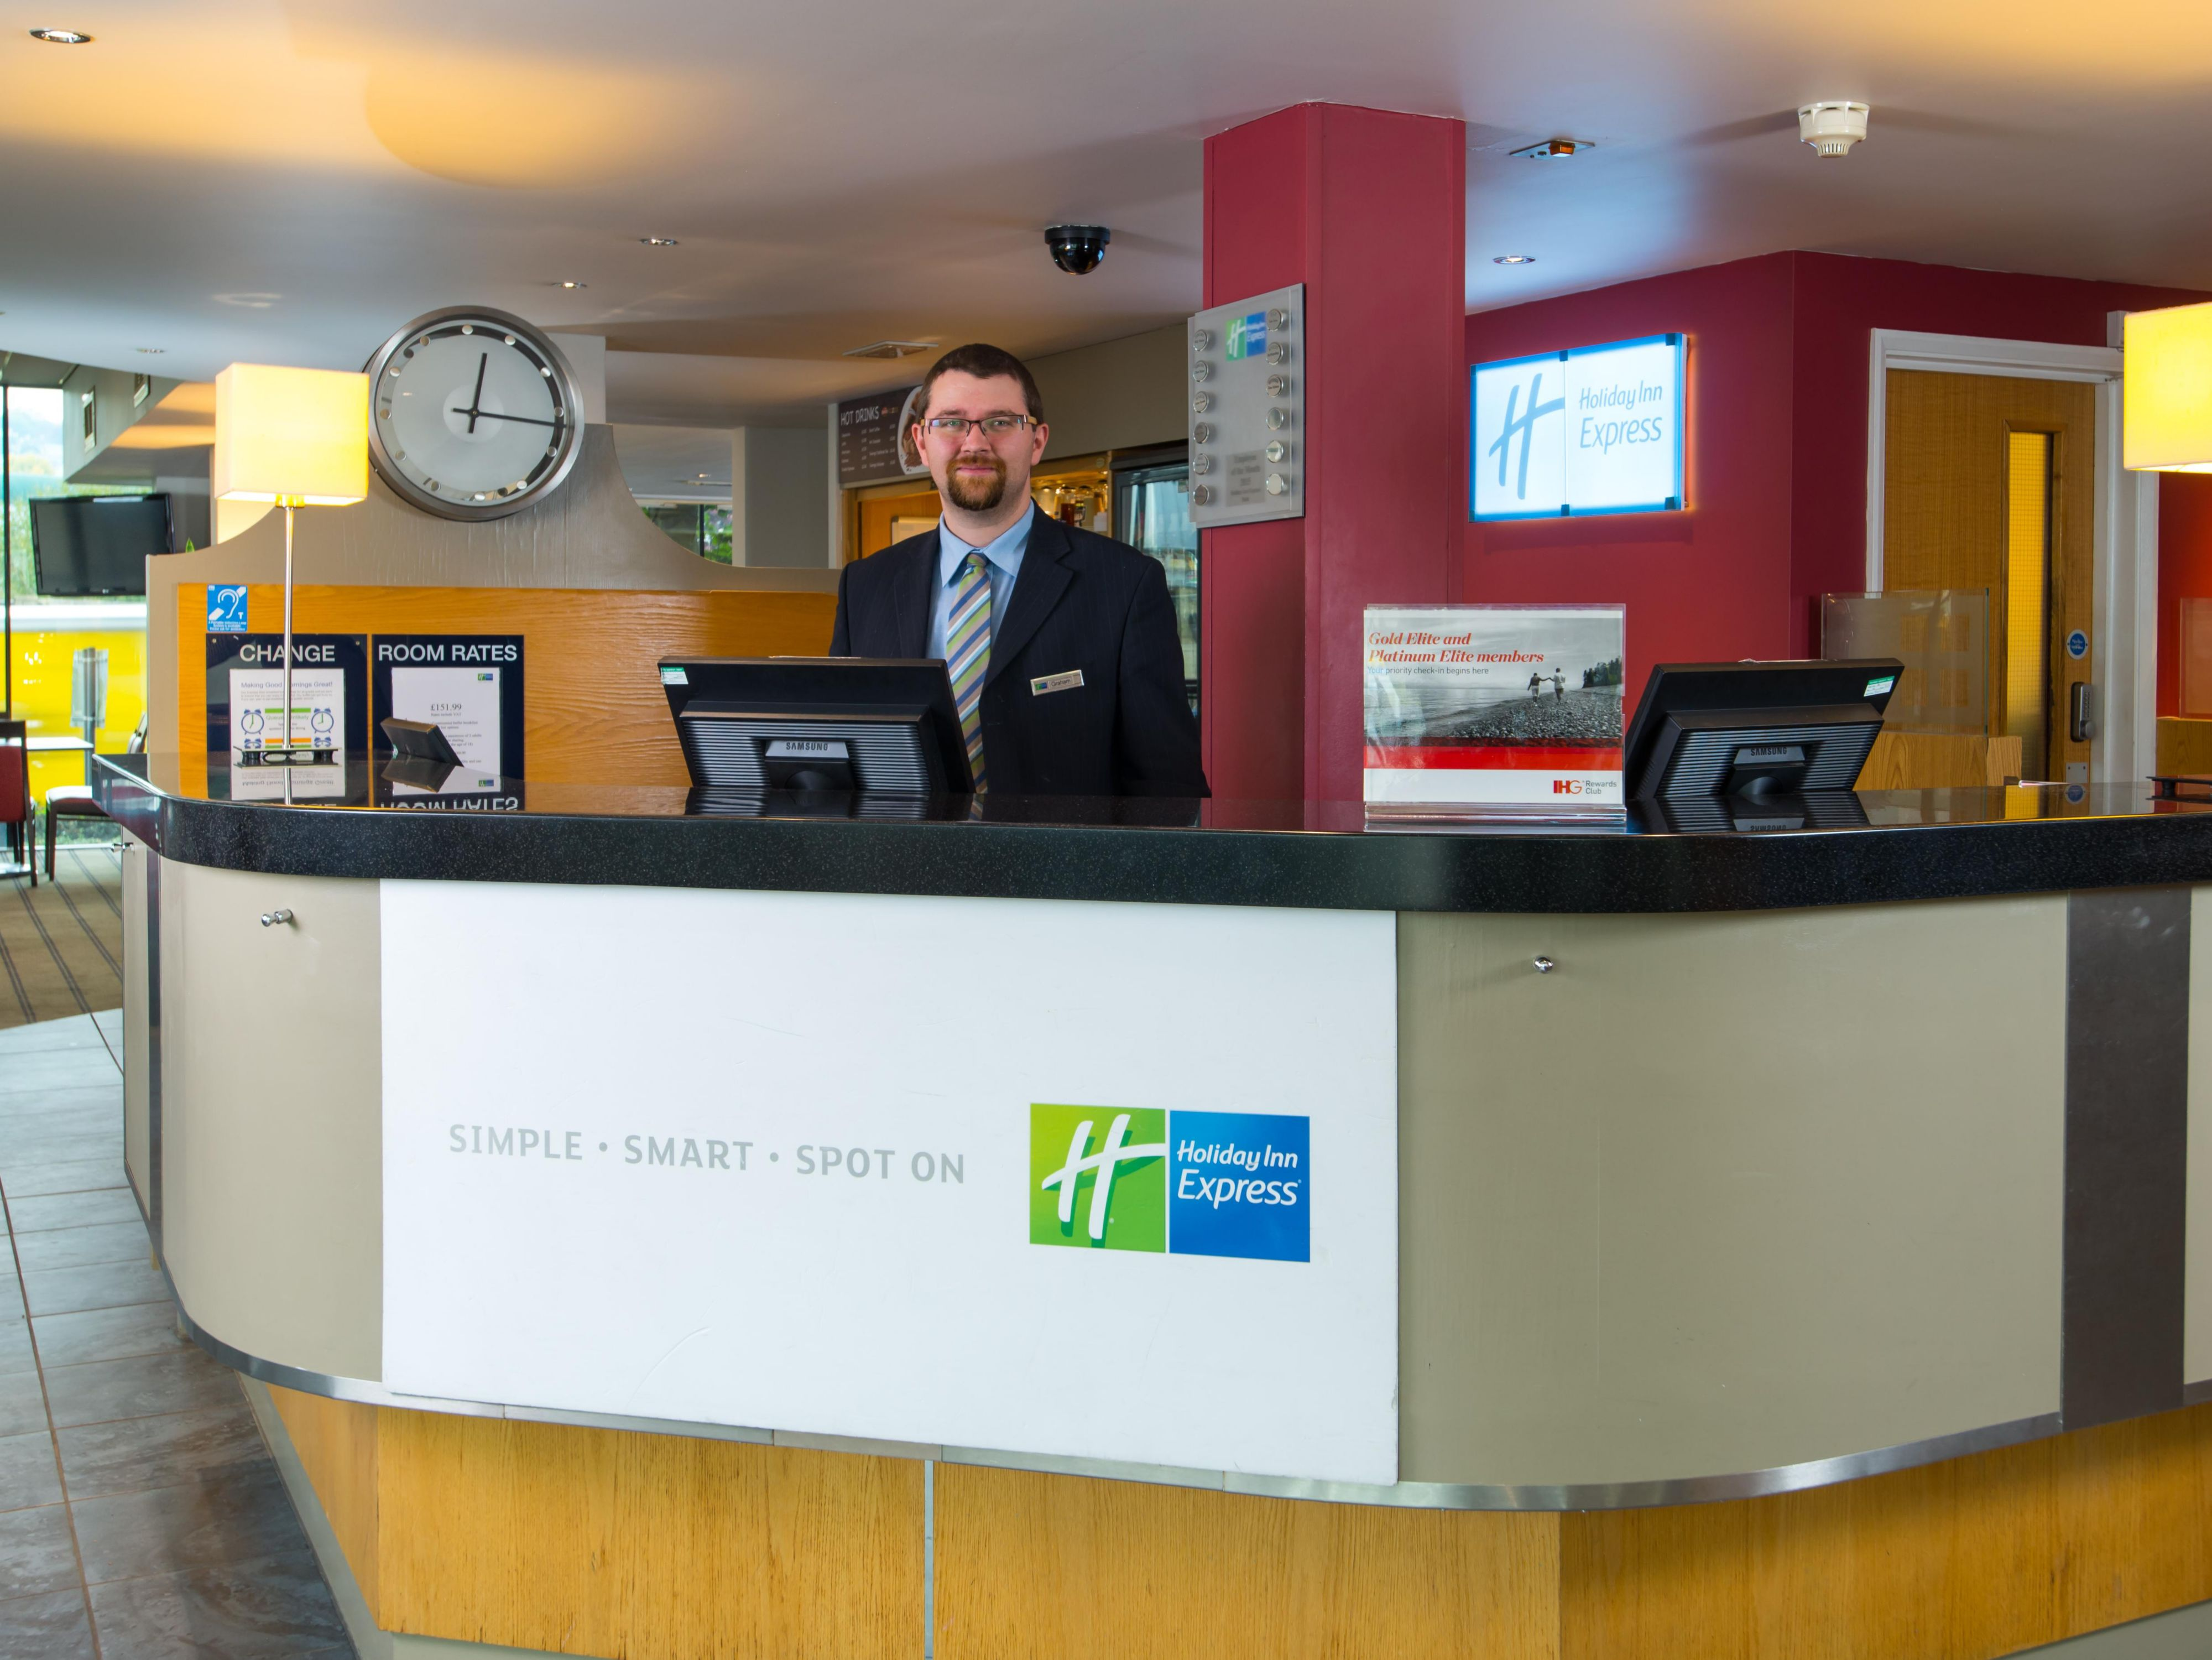 Our Reception team are on hand 24 hours a day for your convenience